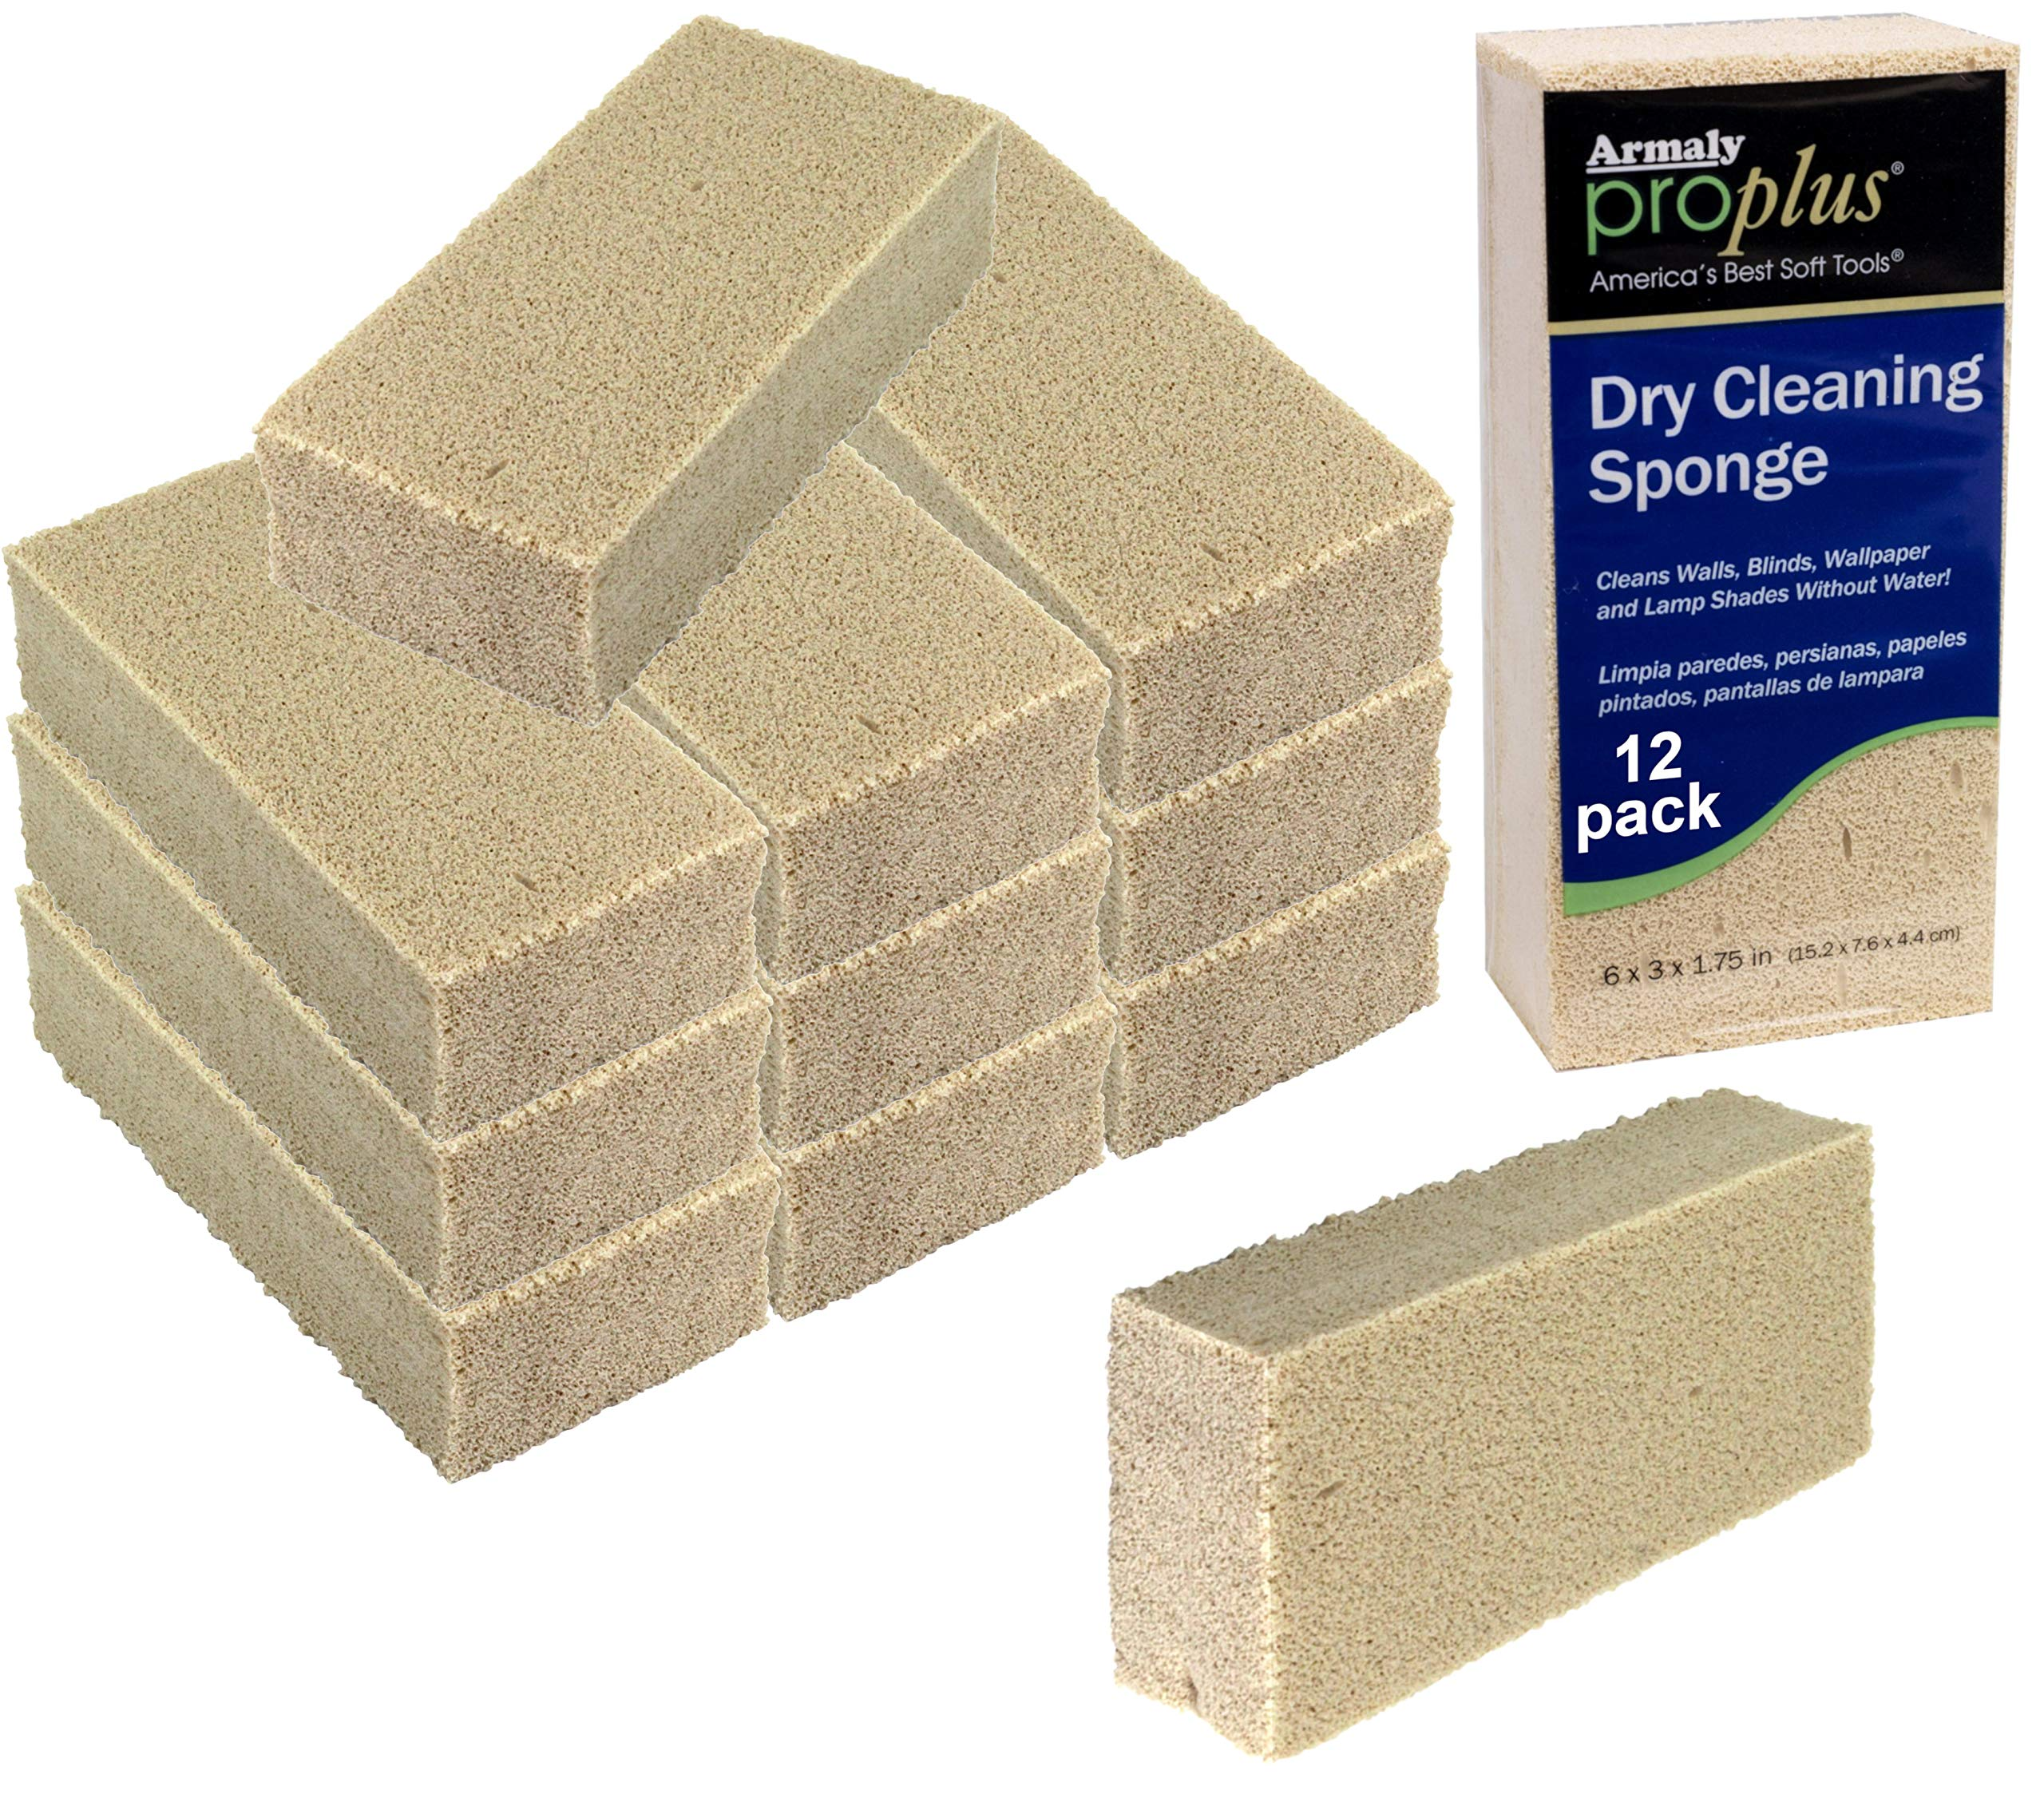 Armaly ProPlus Dry Cleaning Sponge (12-Pack)